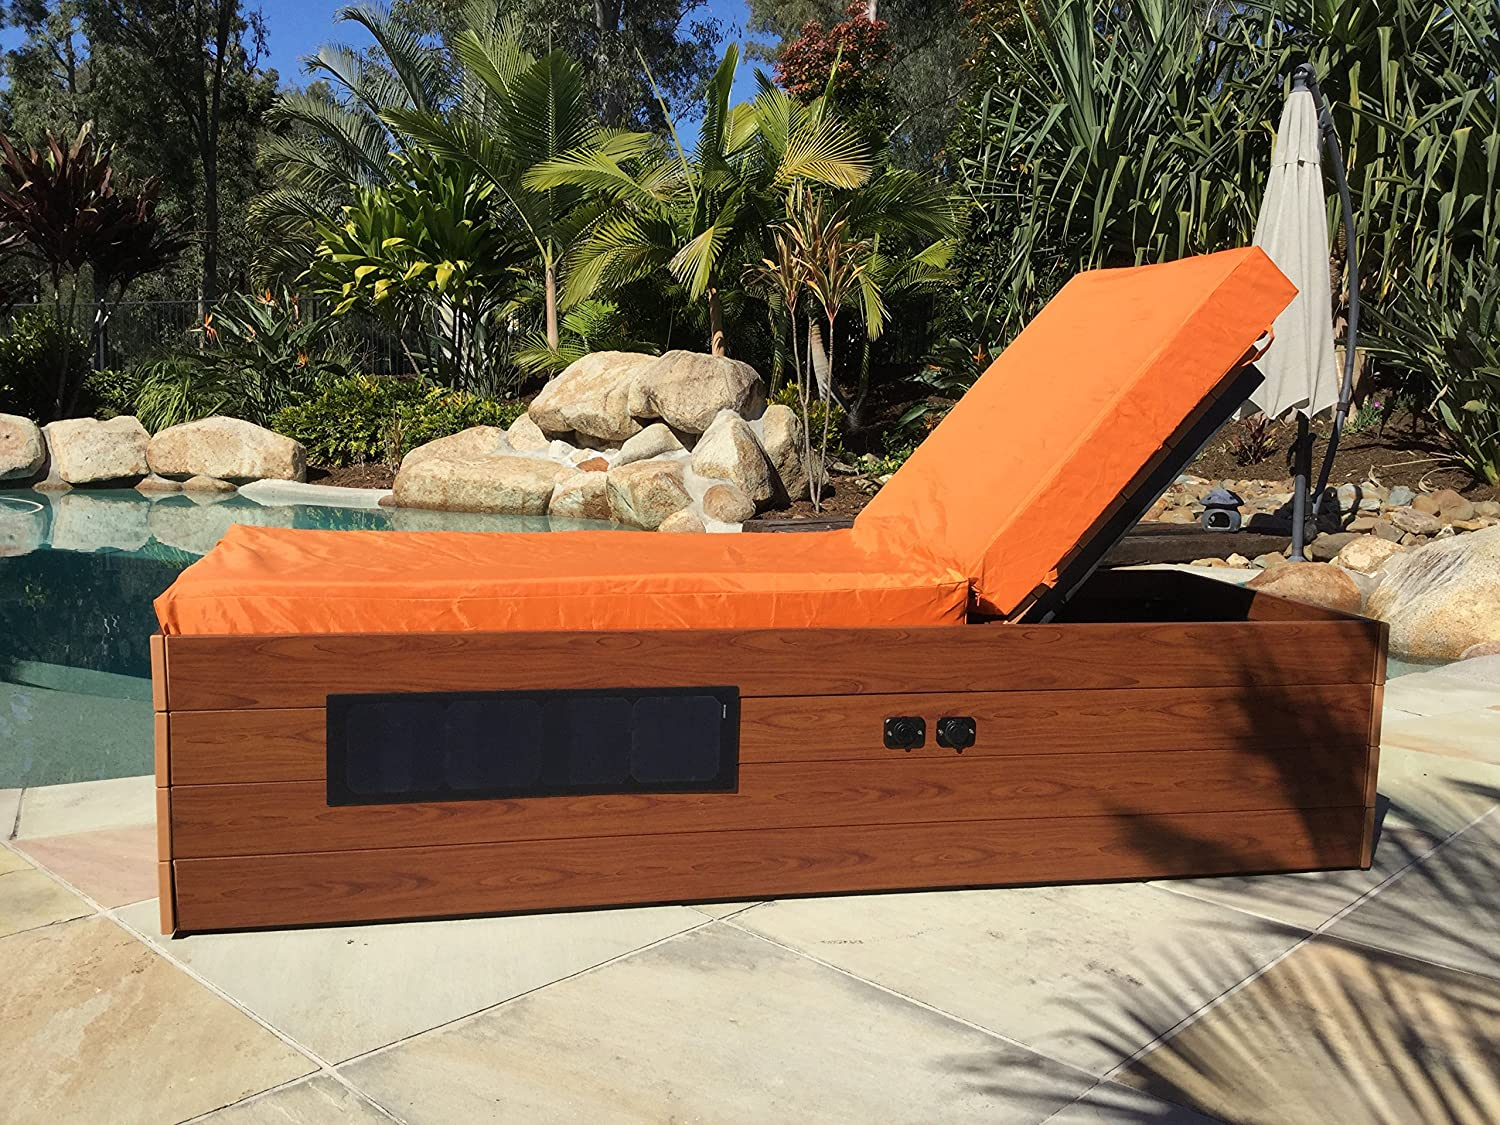 Solar Powered Chaise Lounge with Solar Panel for Charging Phones, Laptops and Tablets. Includes Two USB Charging Ports, 12v Power Outlet and Locker. All-Weather Outdoor Patio (Orange)